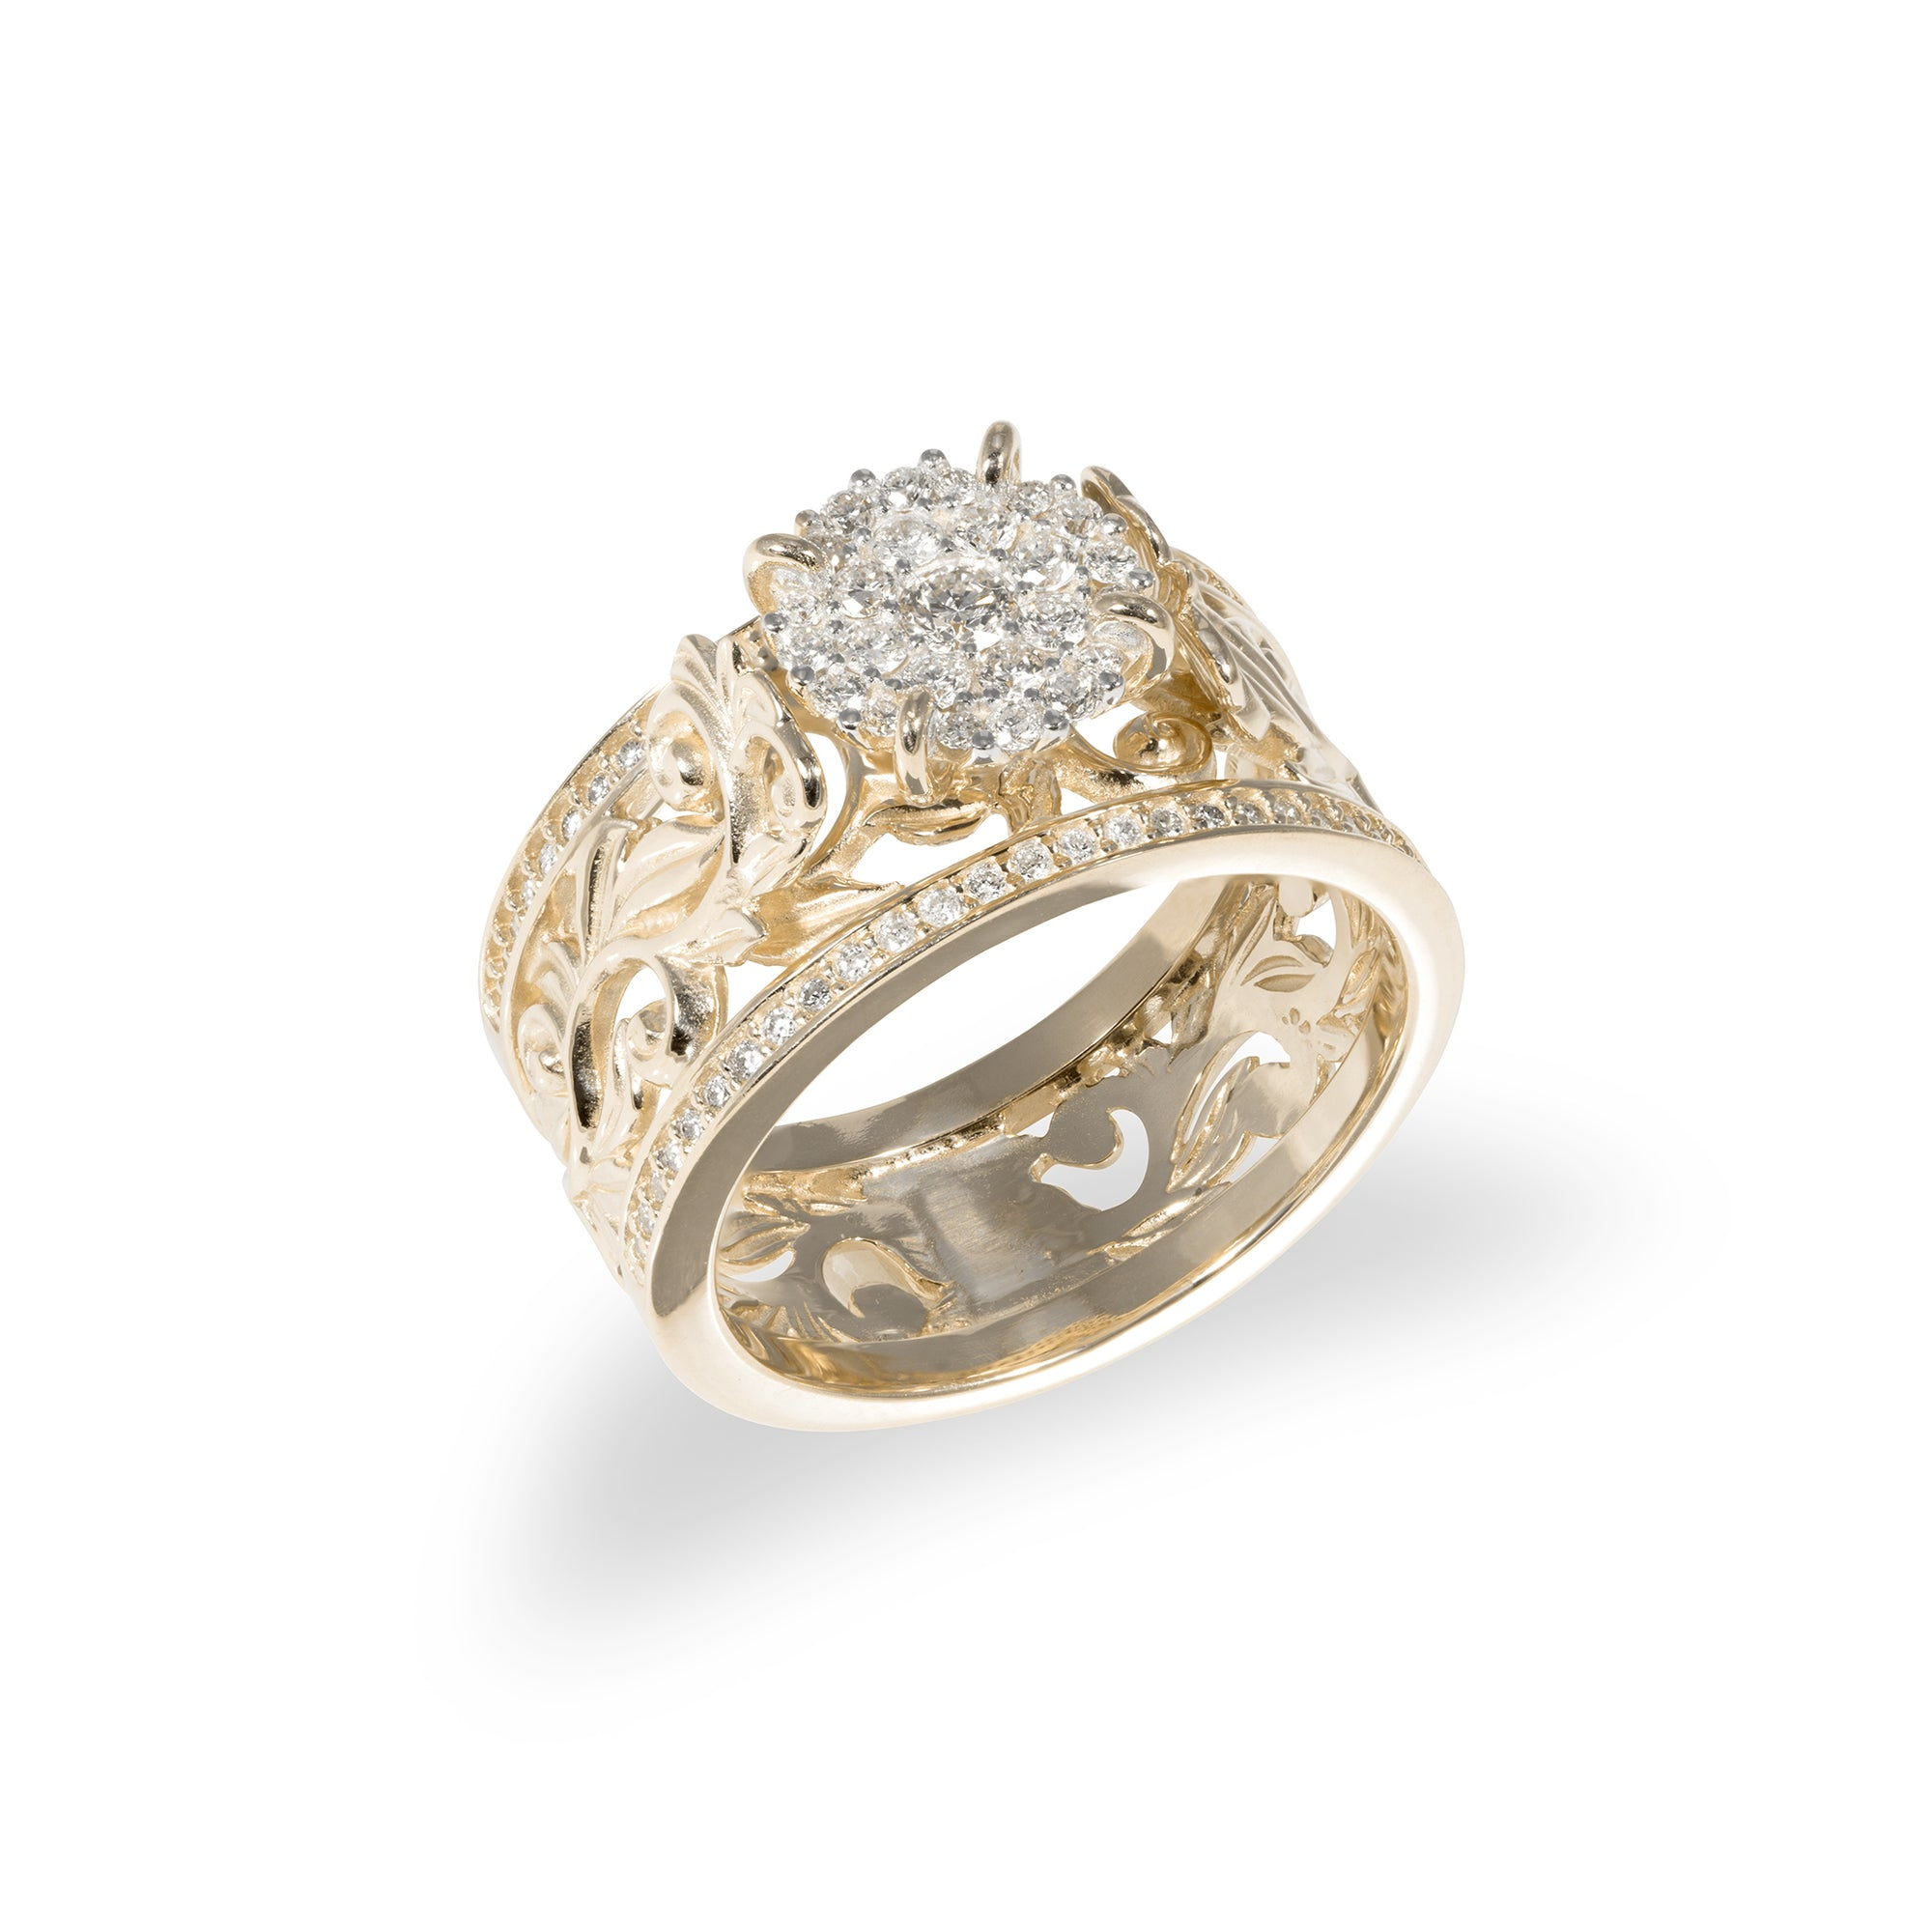 Living Heirloom Engagement Ring in Gold with Diamonds - 10mm-[SKU]